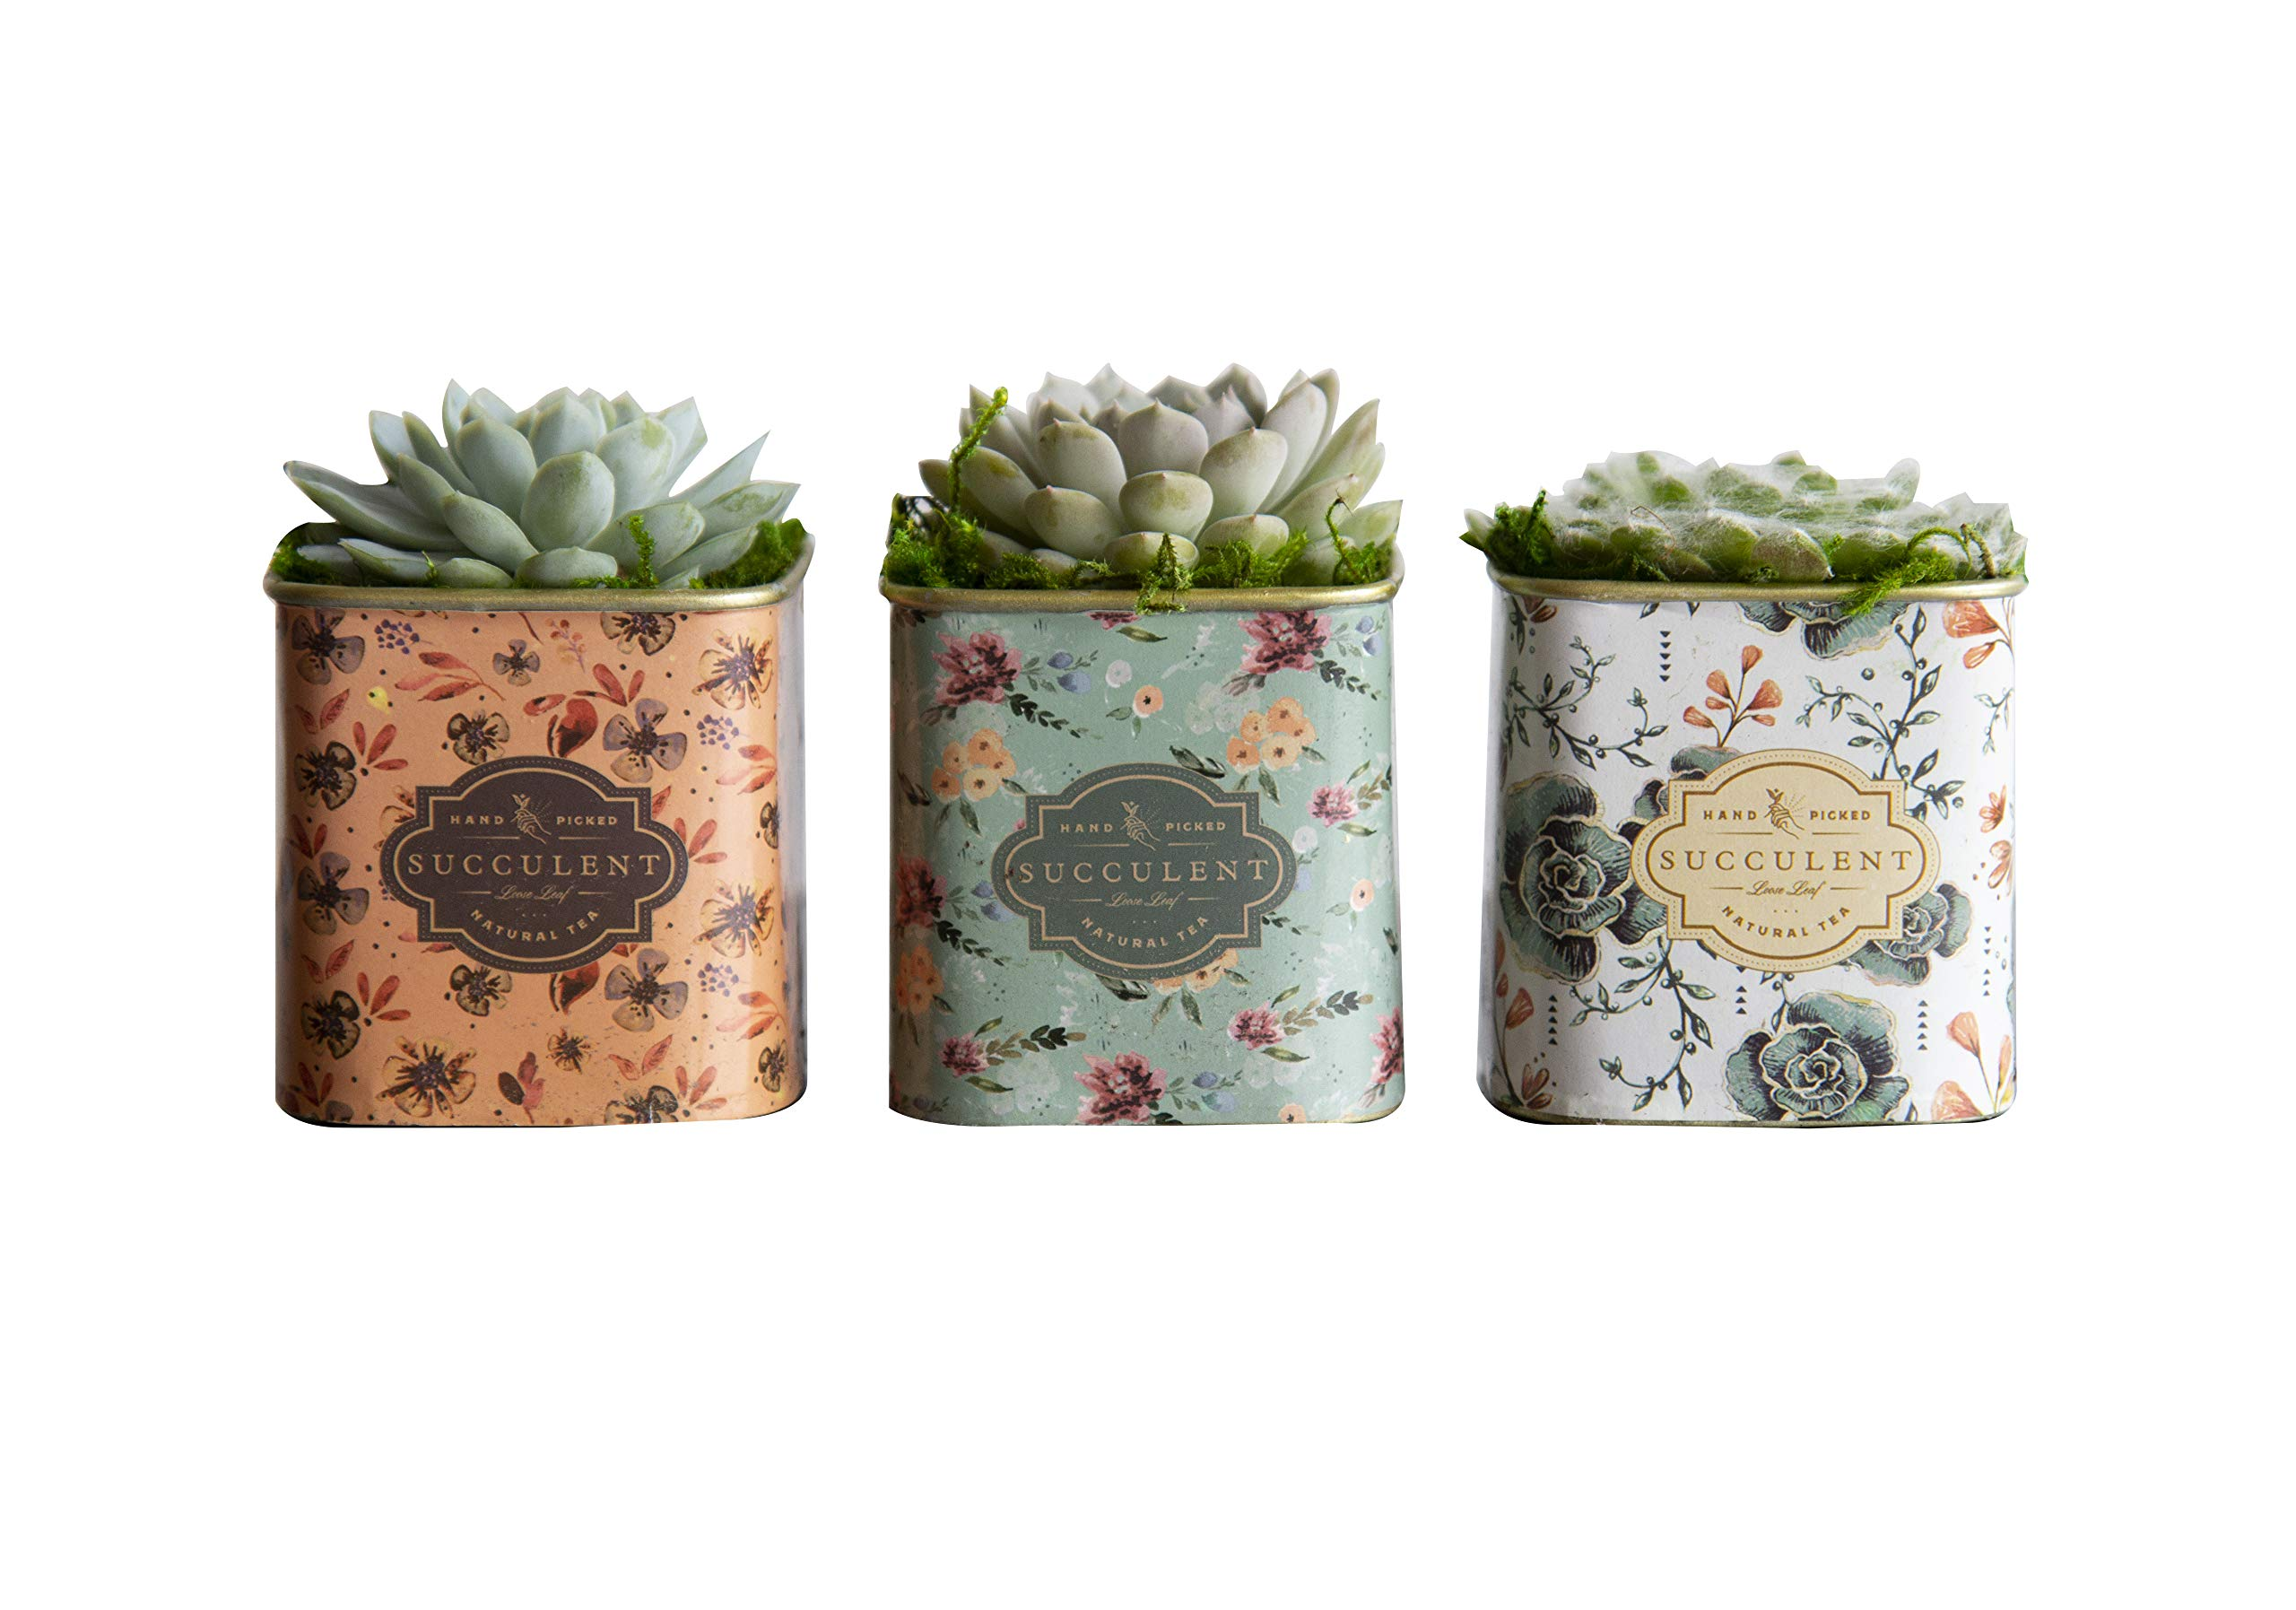 Mother's Day Live Succulents In 3-Inch Floral Tea Tin Containers (Set of 3), From Hallmark Flowers